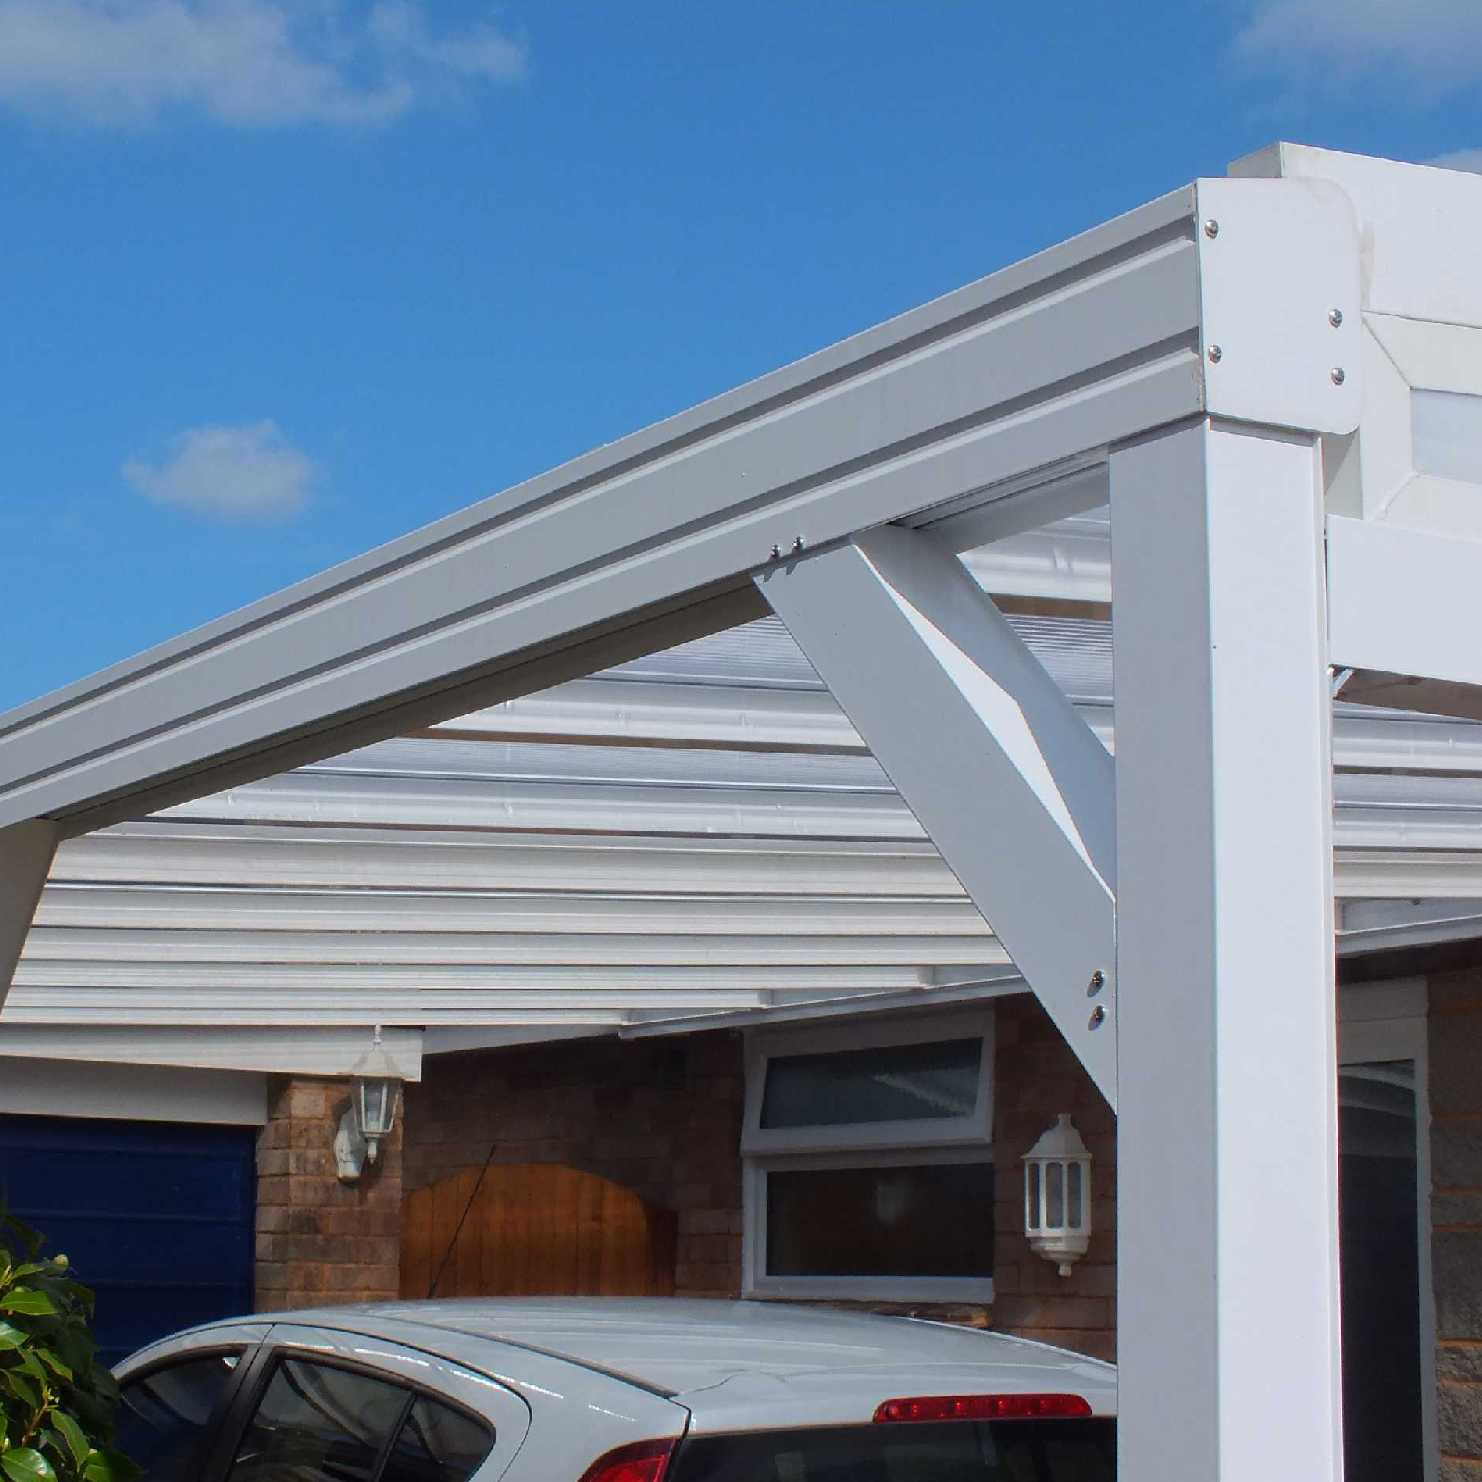 Buy Omega Smart White Lean-To Canopy with 16mm Polycarbonate Glazing - 11.6m (W) x 2.0m (P), (5) Supporting Posts online today